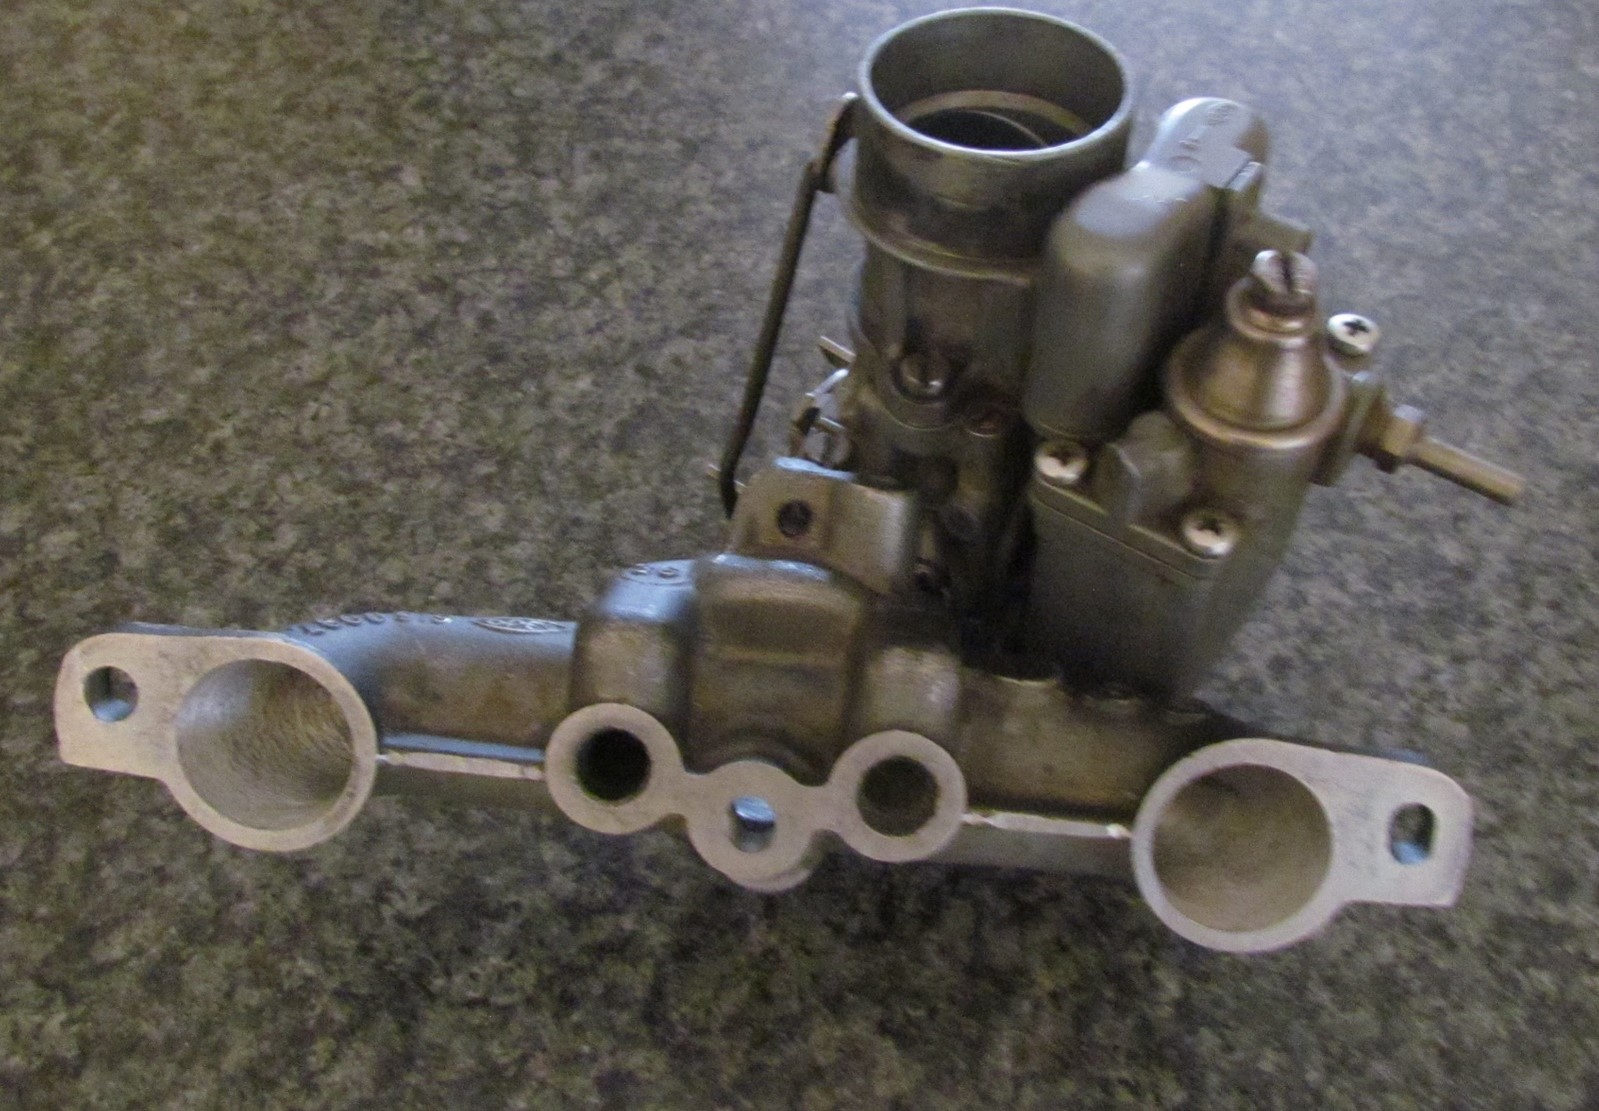 2. Opel Carb and Inlet